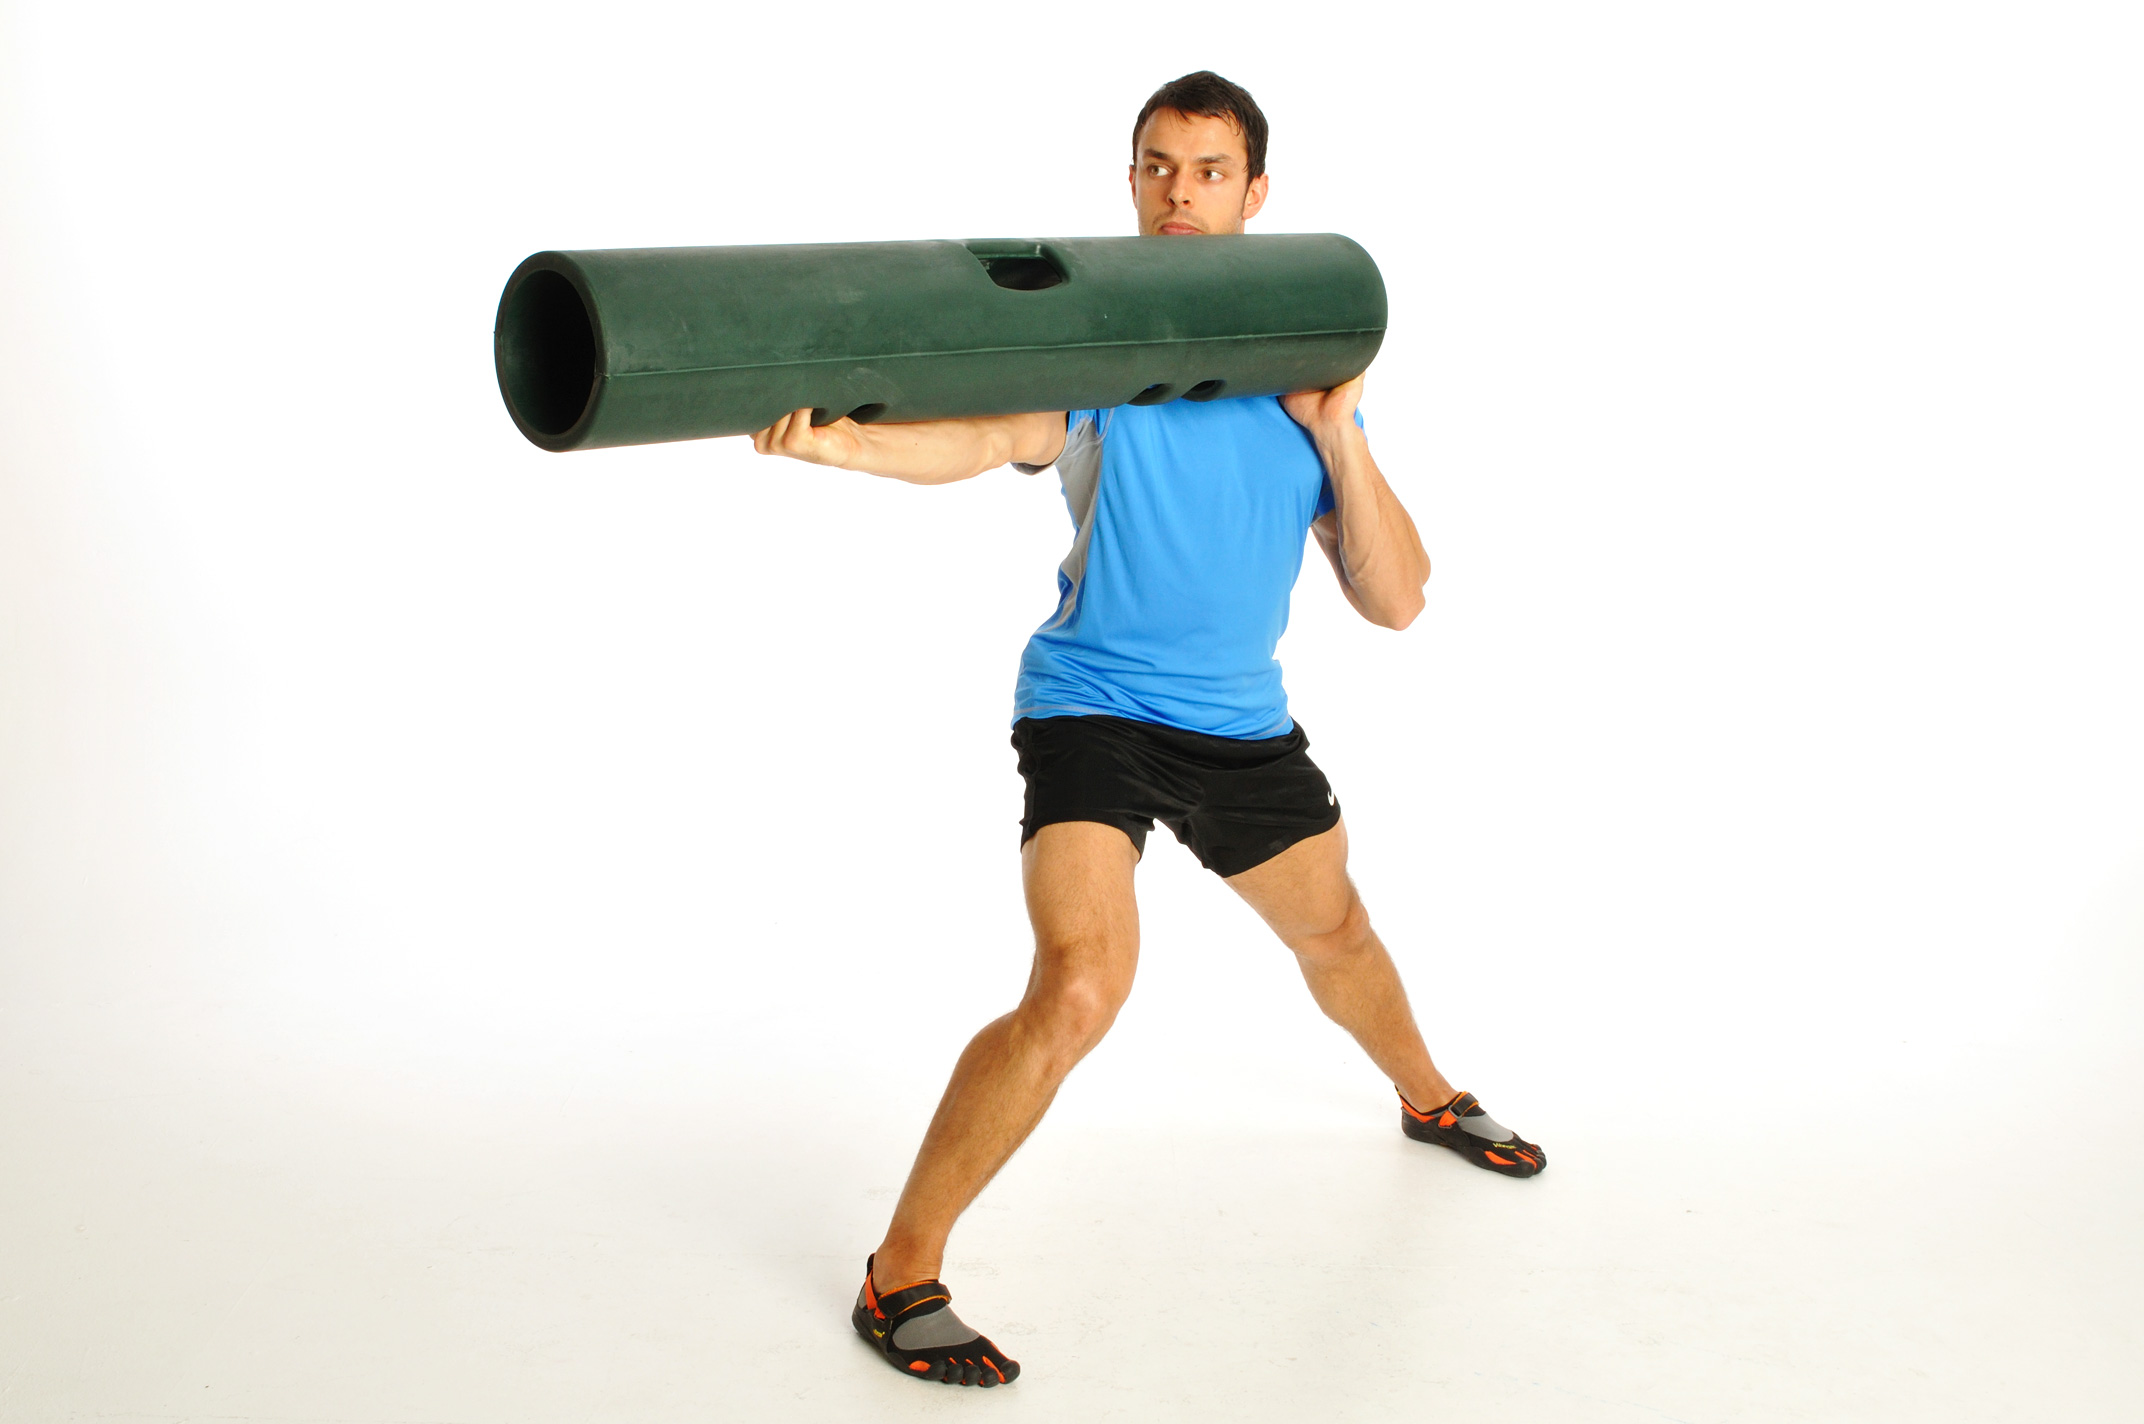 ViPR training: One of the events being showcased